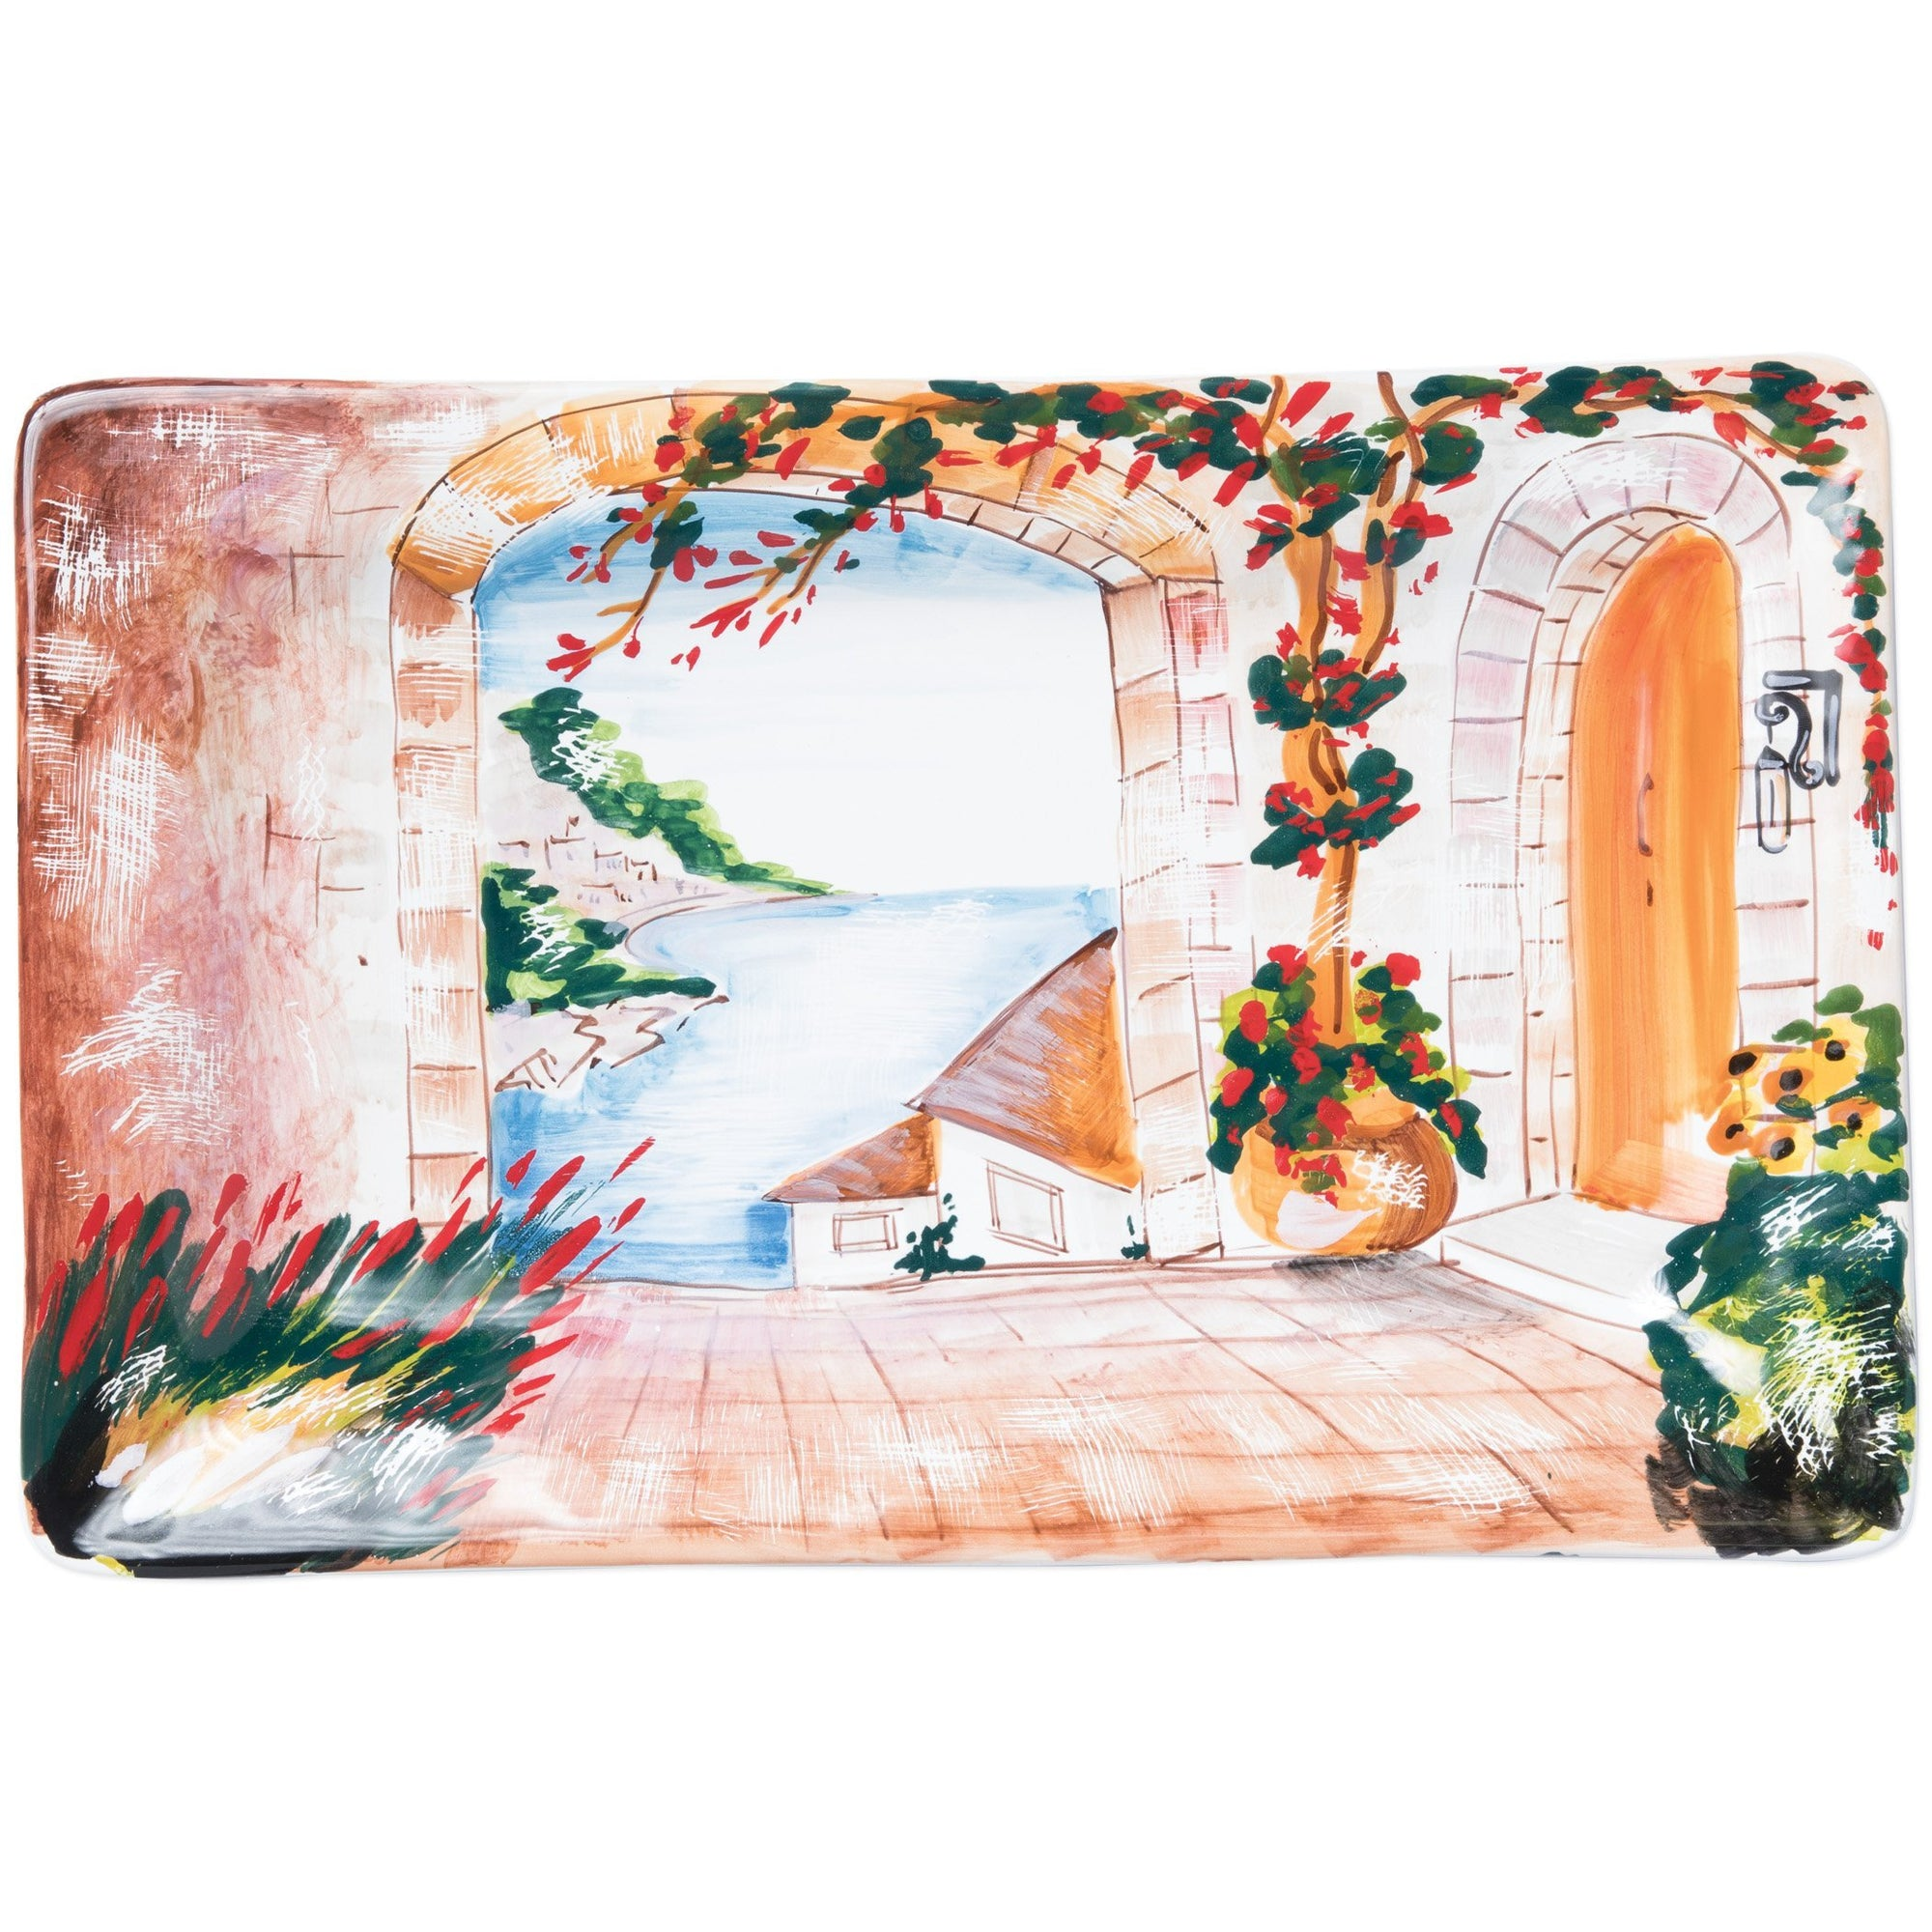 Landscape Wall Plates Inside Looking Out Rectangular Wall Plate by VIETRI